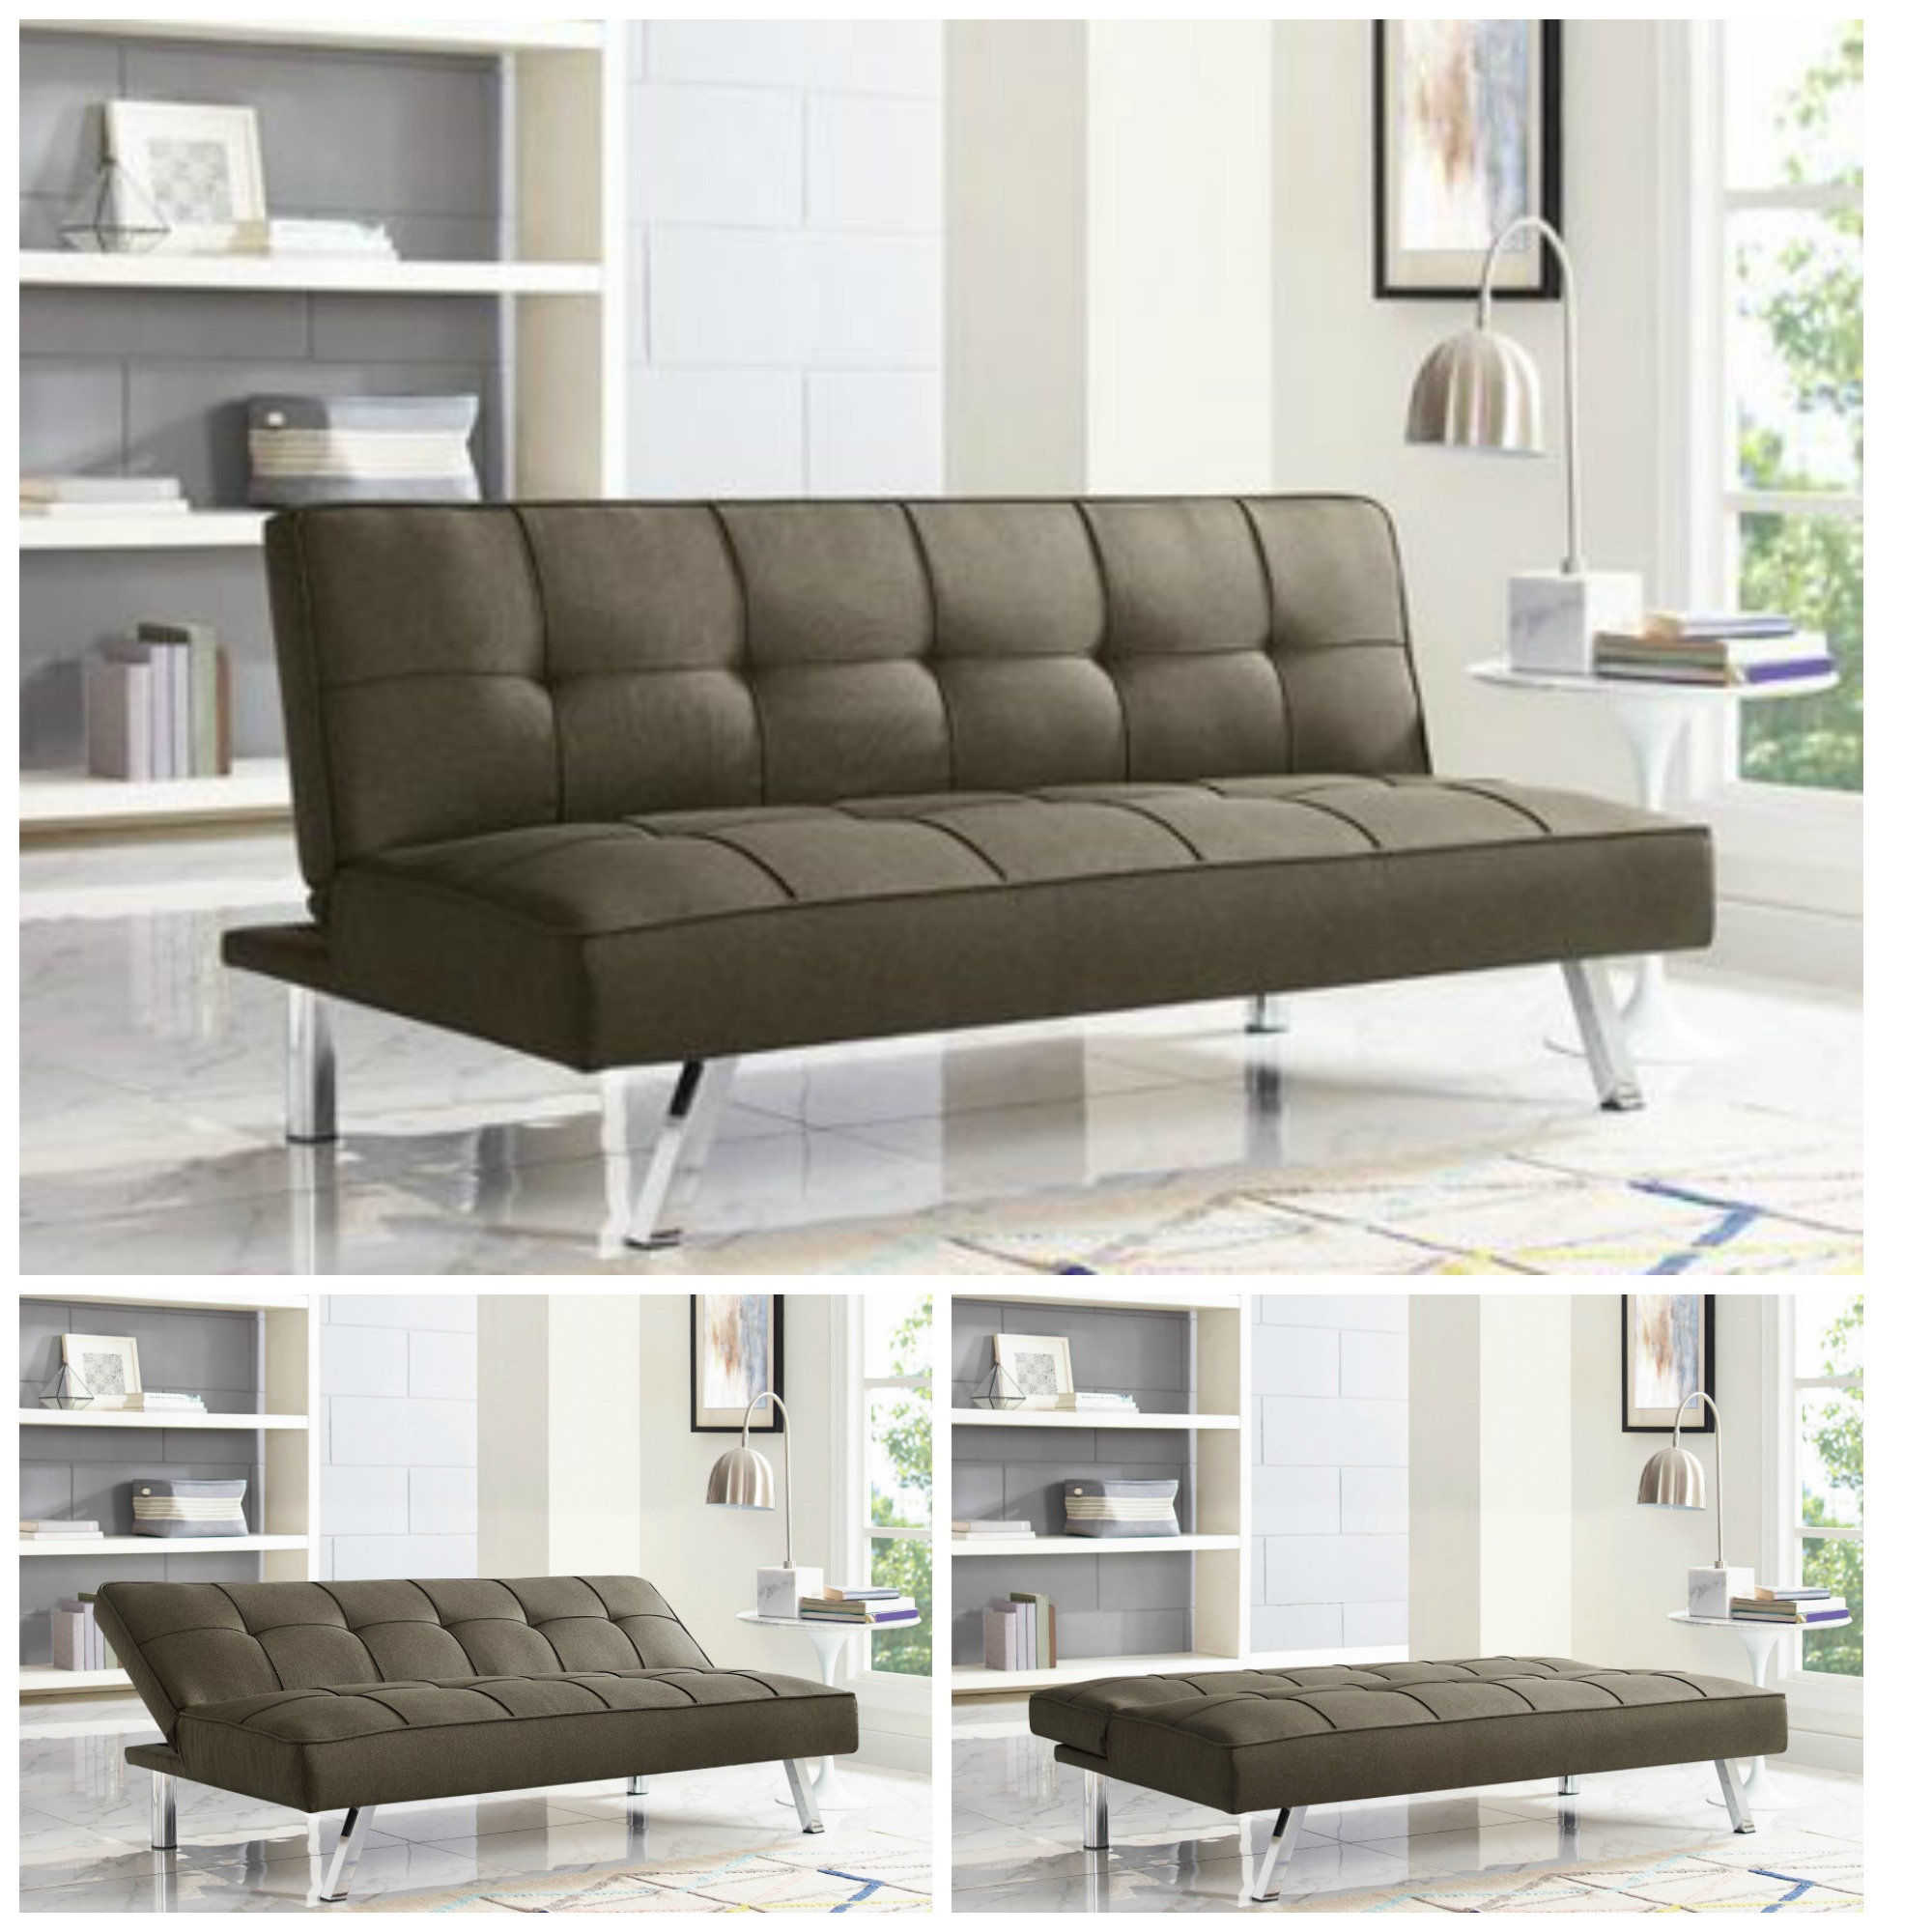 Surprising Details About Sleeper Sofa Bed Brown Convertible Couch Modern Living Room Futon Loveseat Chair Gmtry Best Dining Table And Chair Ideas Images Gmtryco